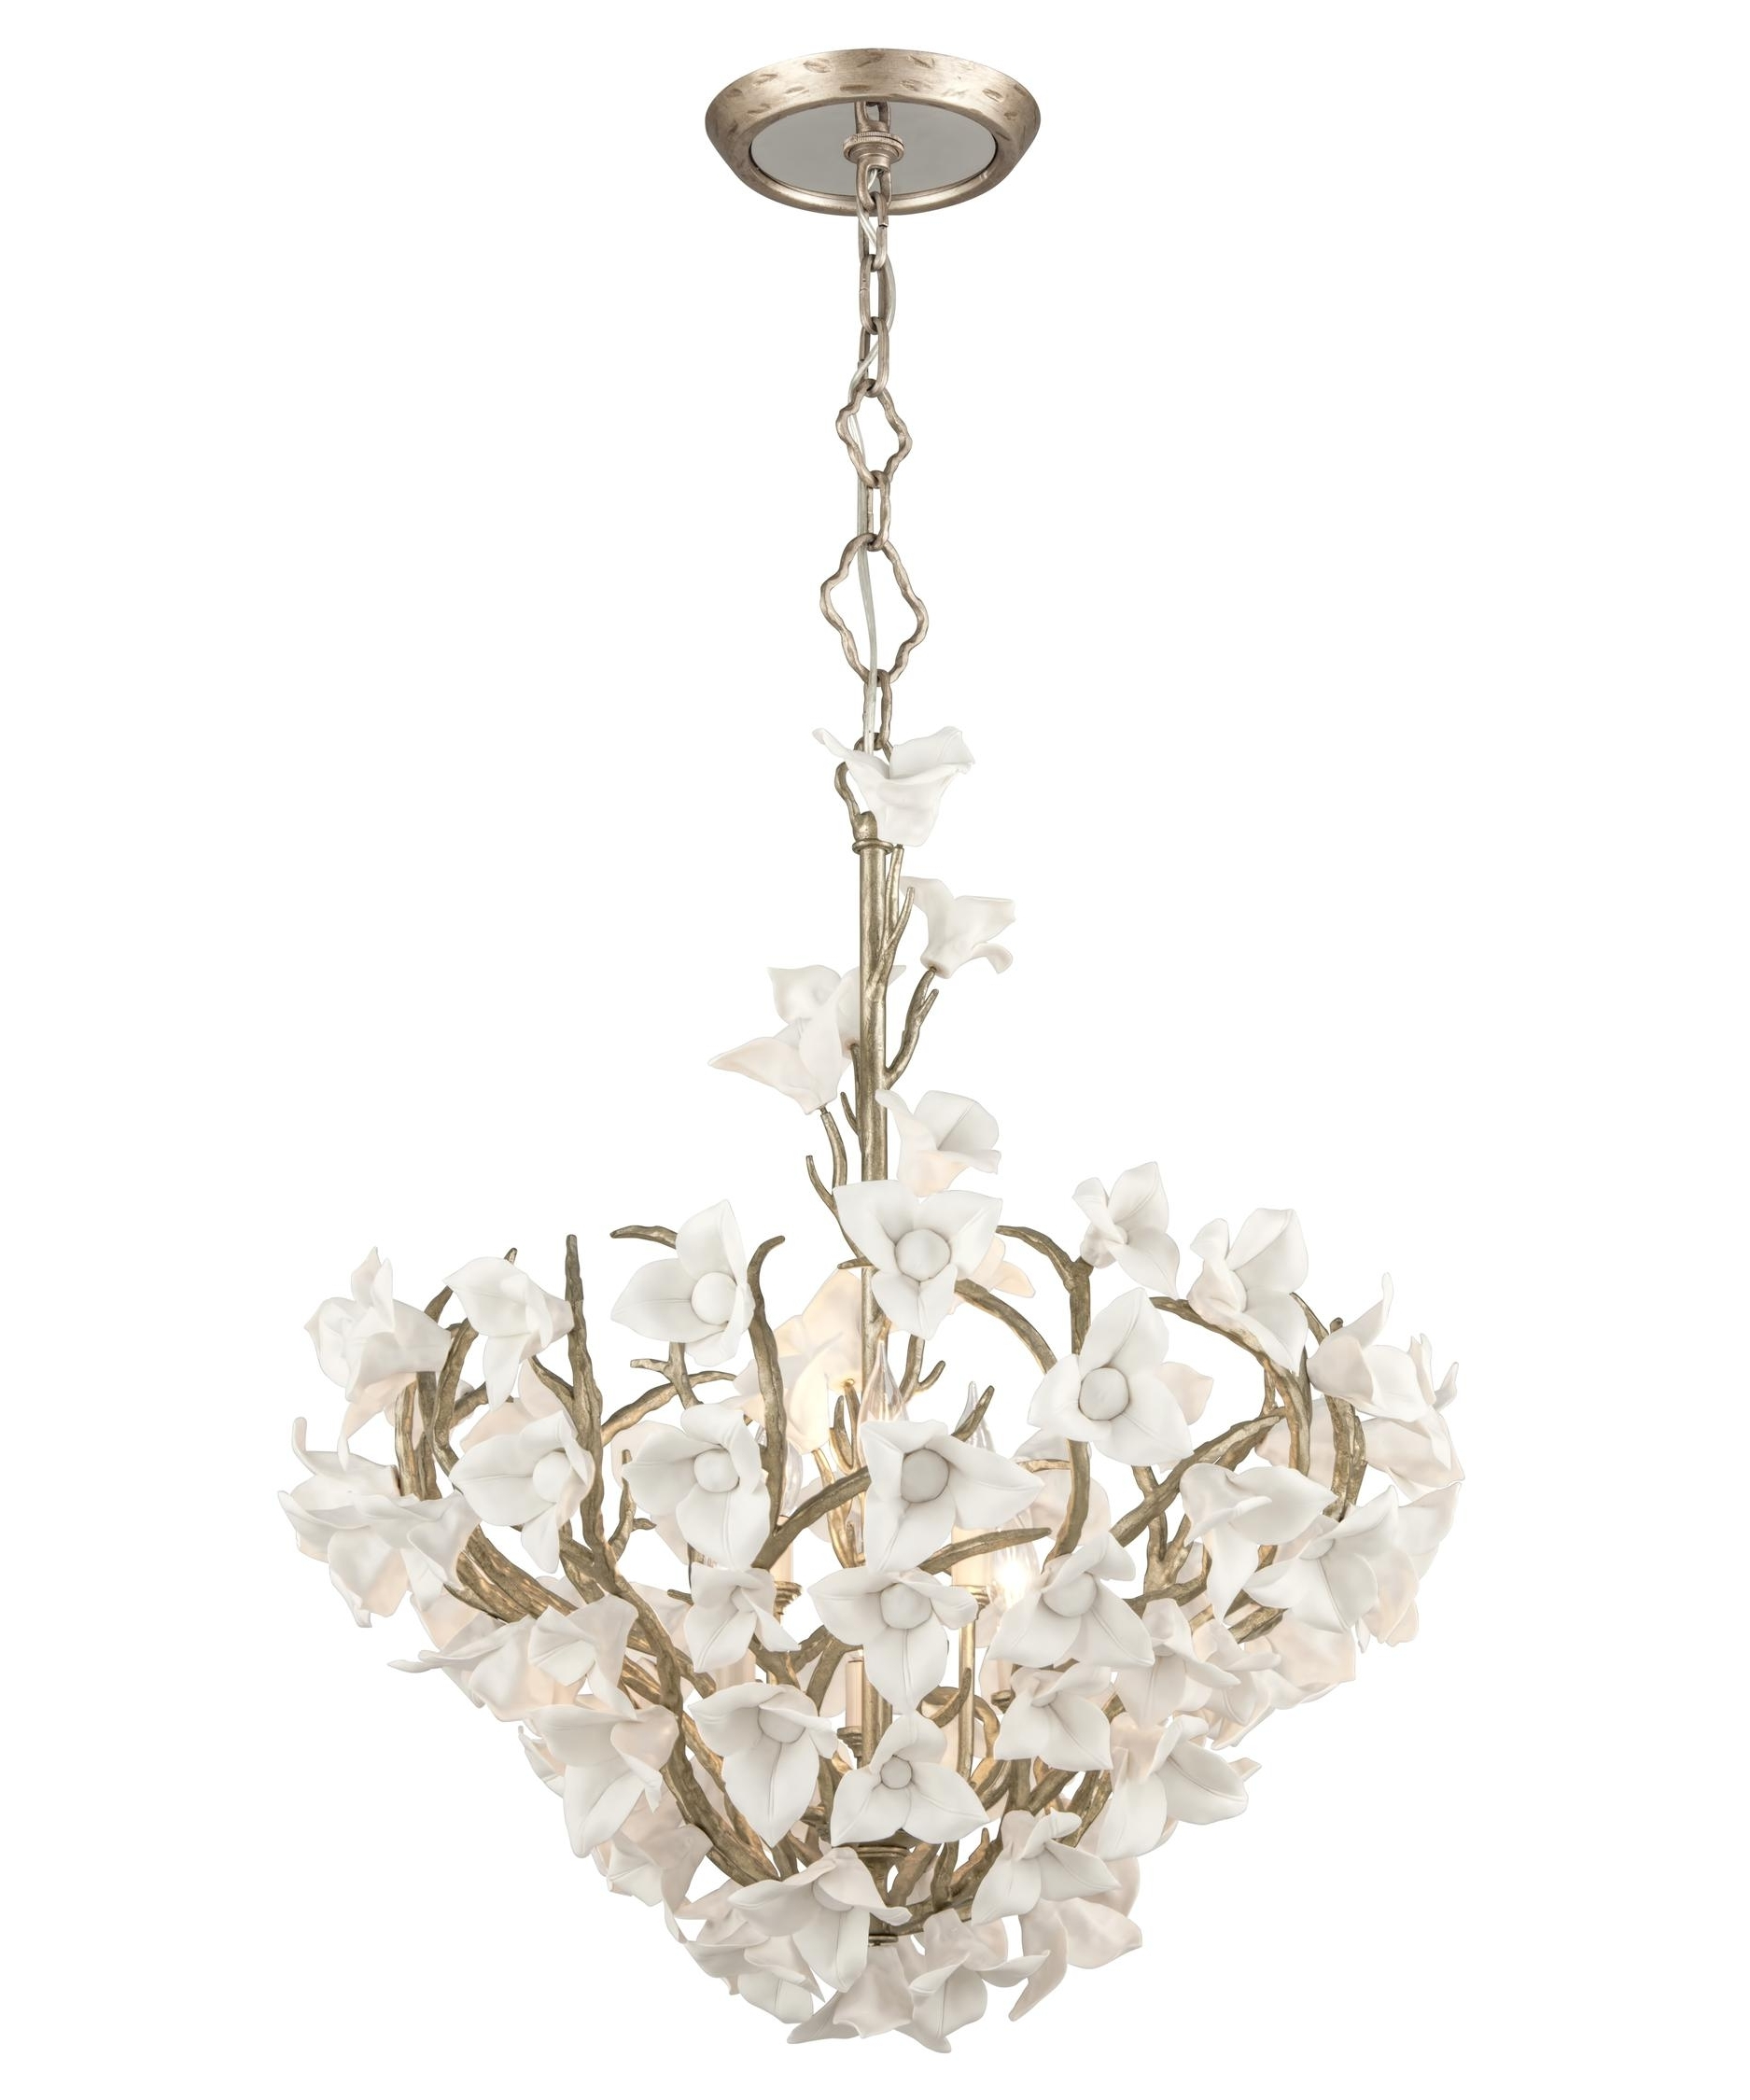 Trendy Lily Chandeliers Regarding Corbett Lighting 211 47 Lily 26 Inch Wide 6 Light Large Pendant (View 5 of 20)